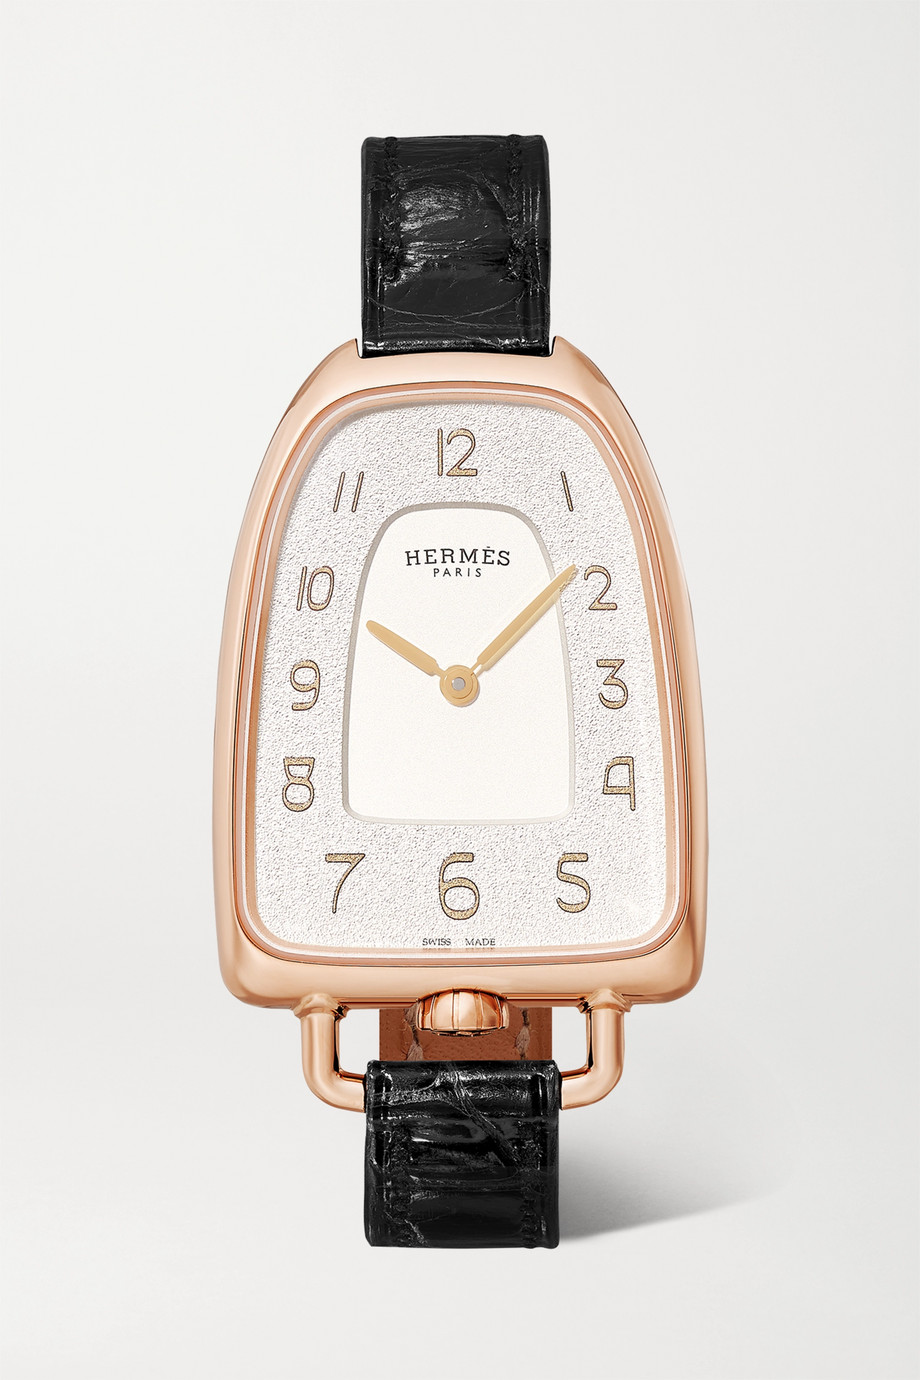 Hermès Timepieces Montre en or rose 18 carats à bracelet en alligator Galop d'Hermès 26 mm Medium